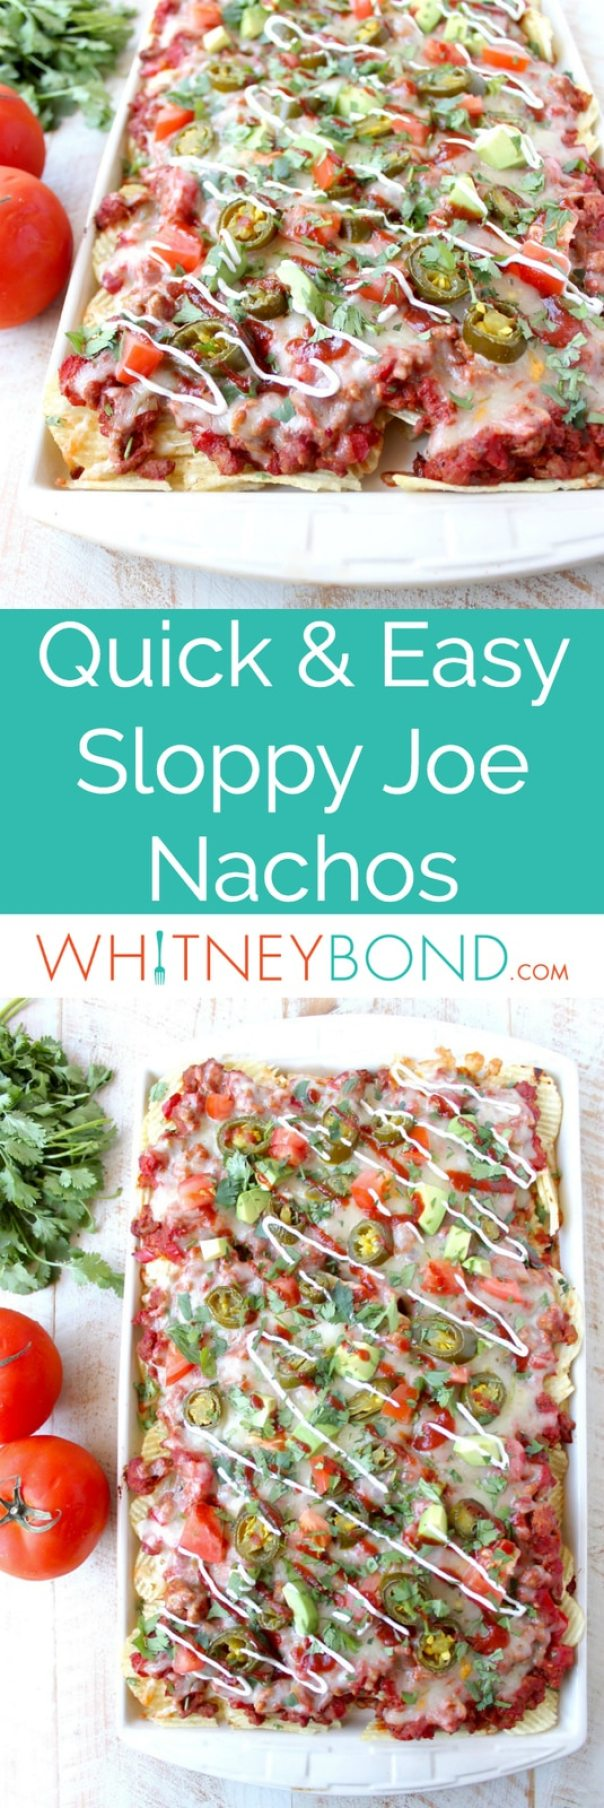 Ditch the bun for these Sloppy Joe Nachos! An easy recipe that's great for game day or a fun and simple weeknight dinner!